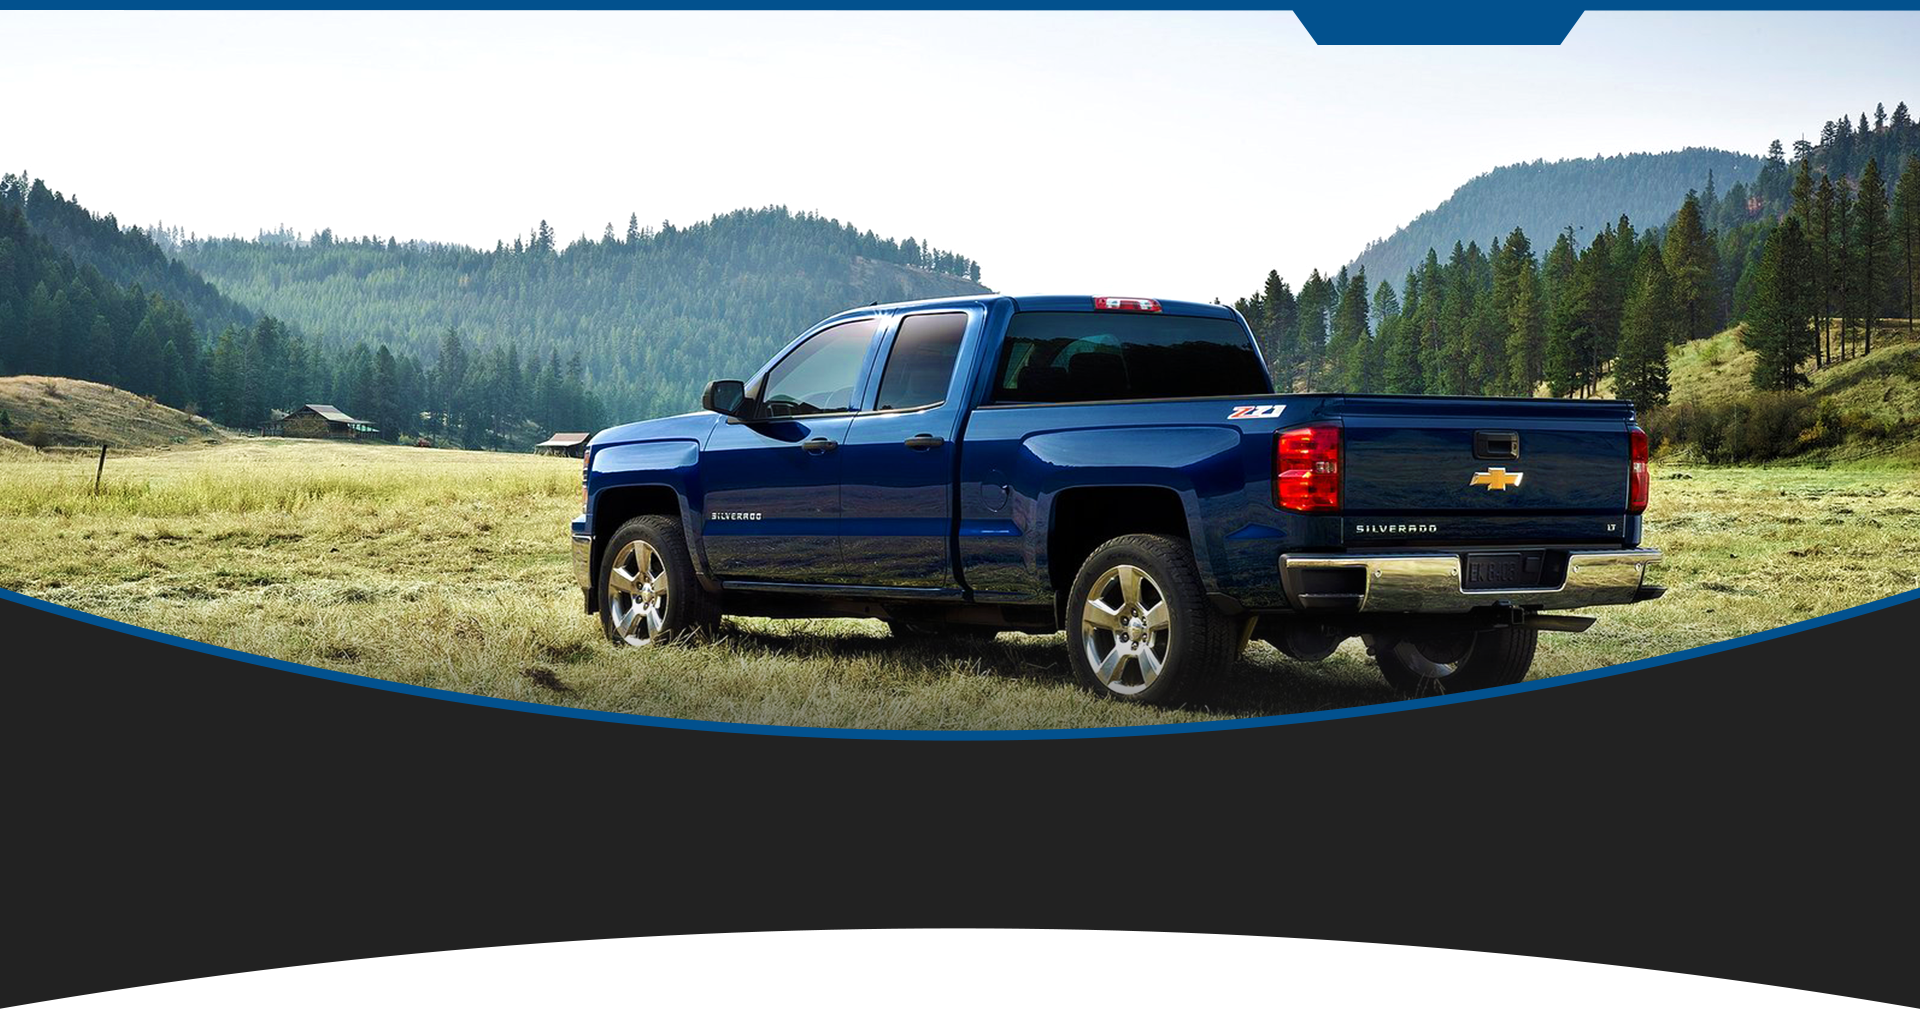 Montana Affordable 4X4 s & auto sales Used mercial Trucks For